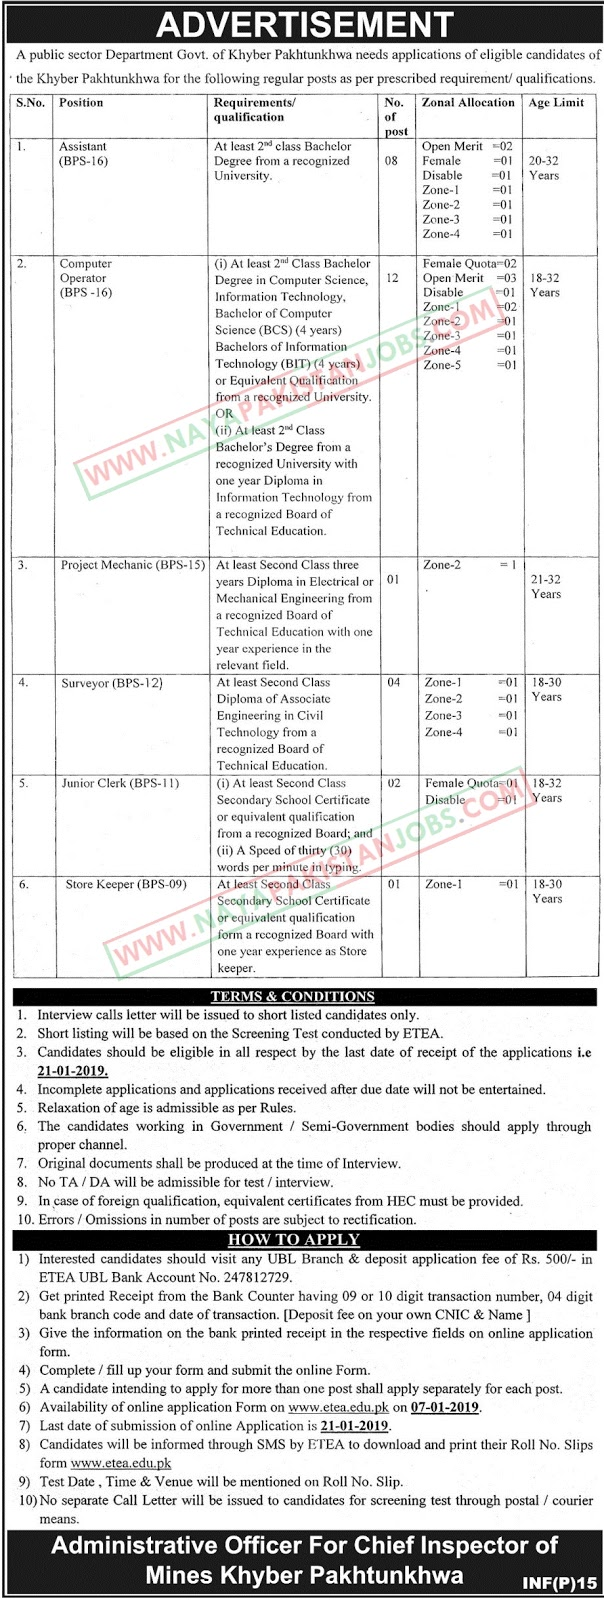 Mines And Minerals Department Jobs : Latest Vacancies Announced in Mines And Minerals Department by Government of KPK 6 January 2019 - Naya Pakistan Jobs